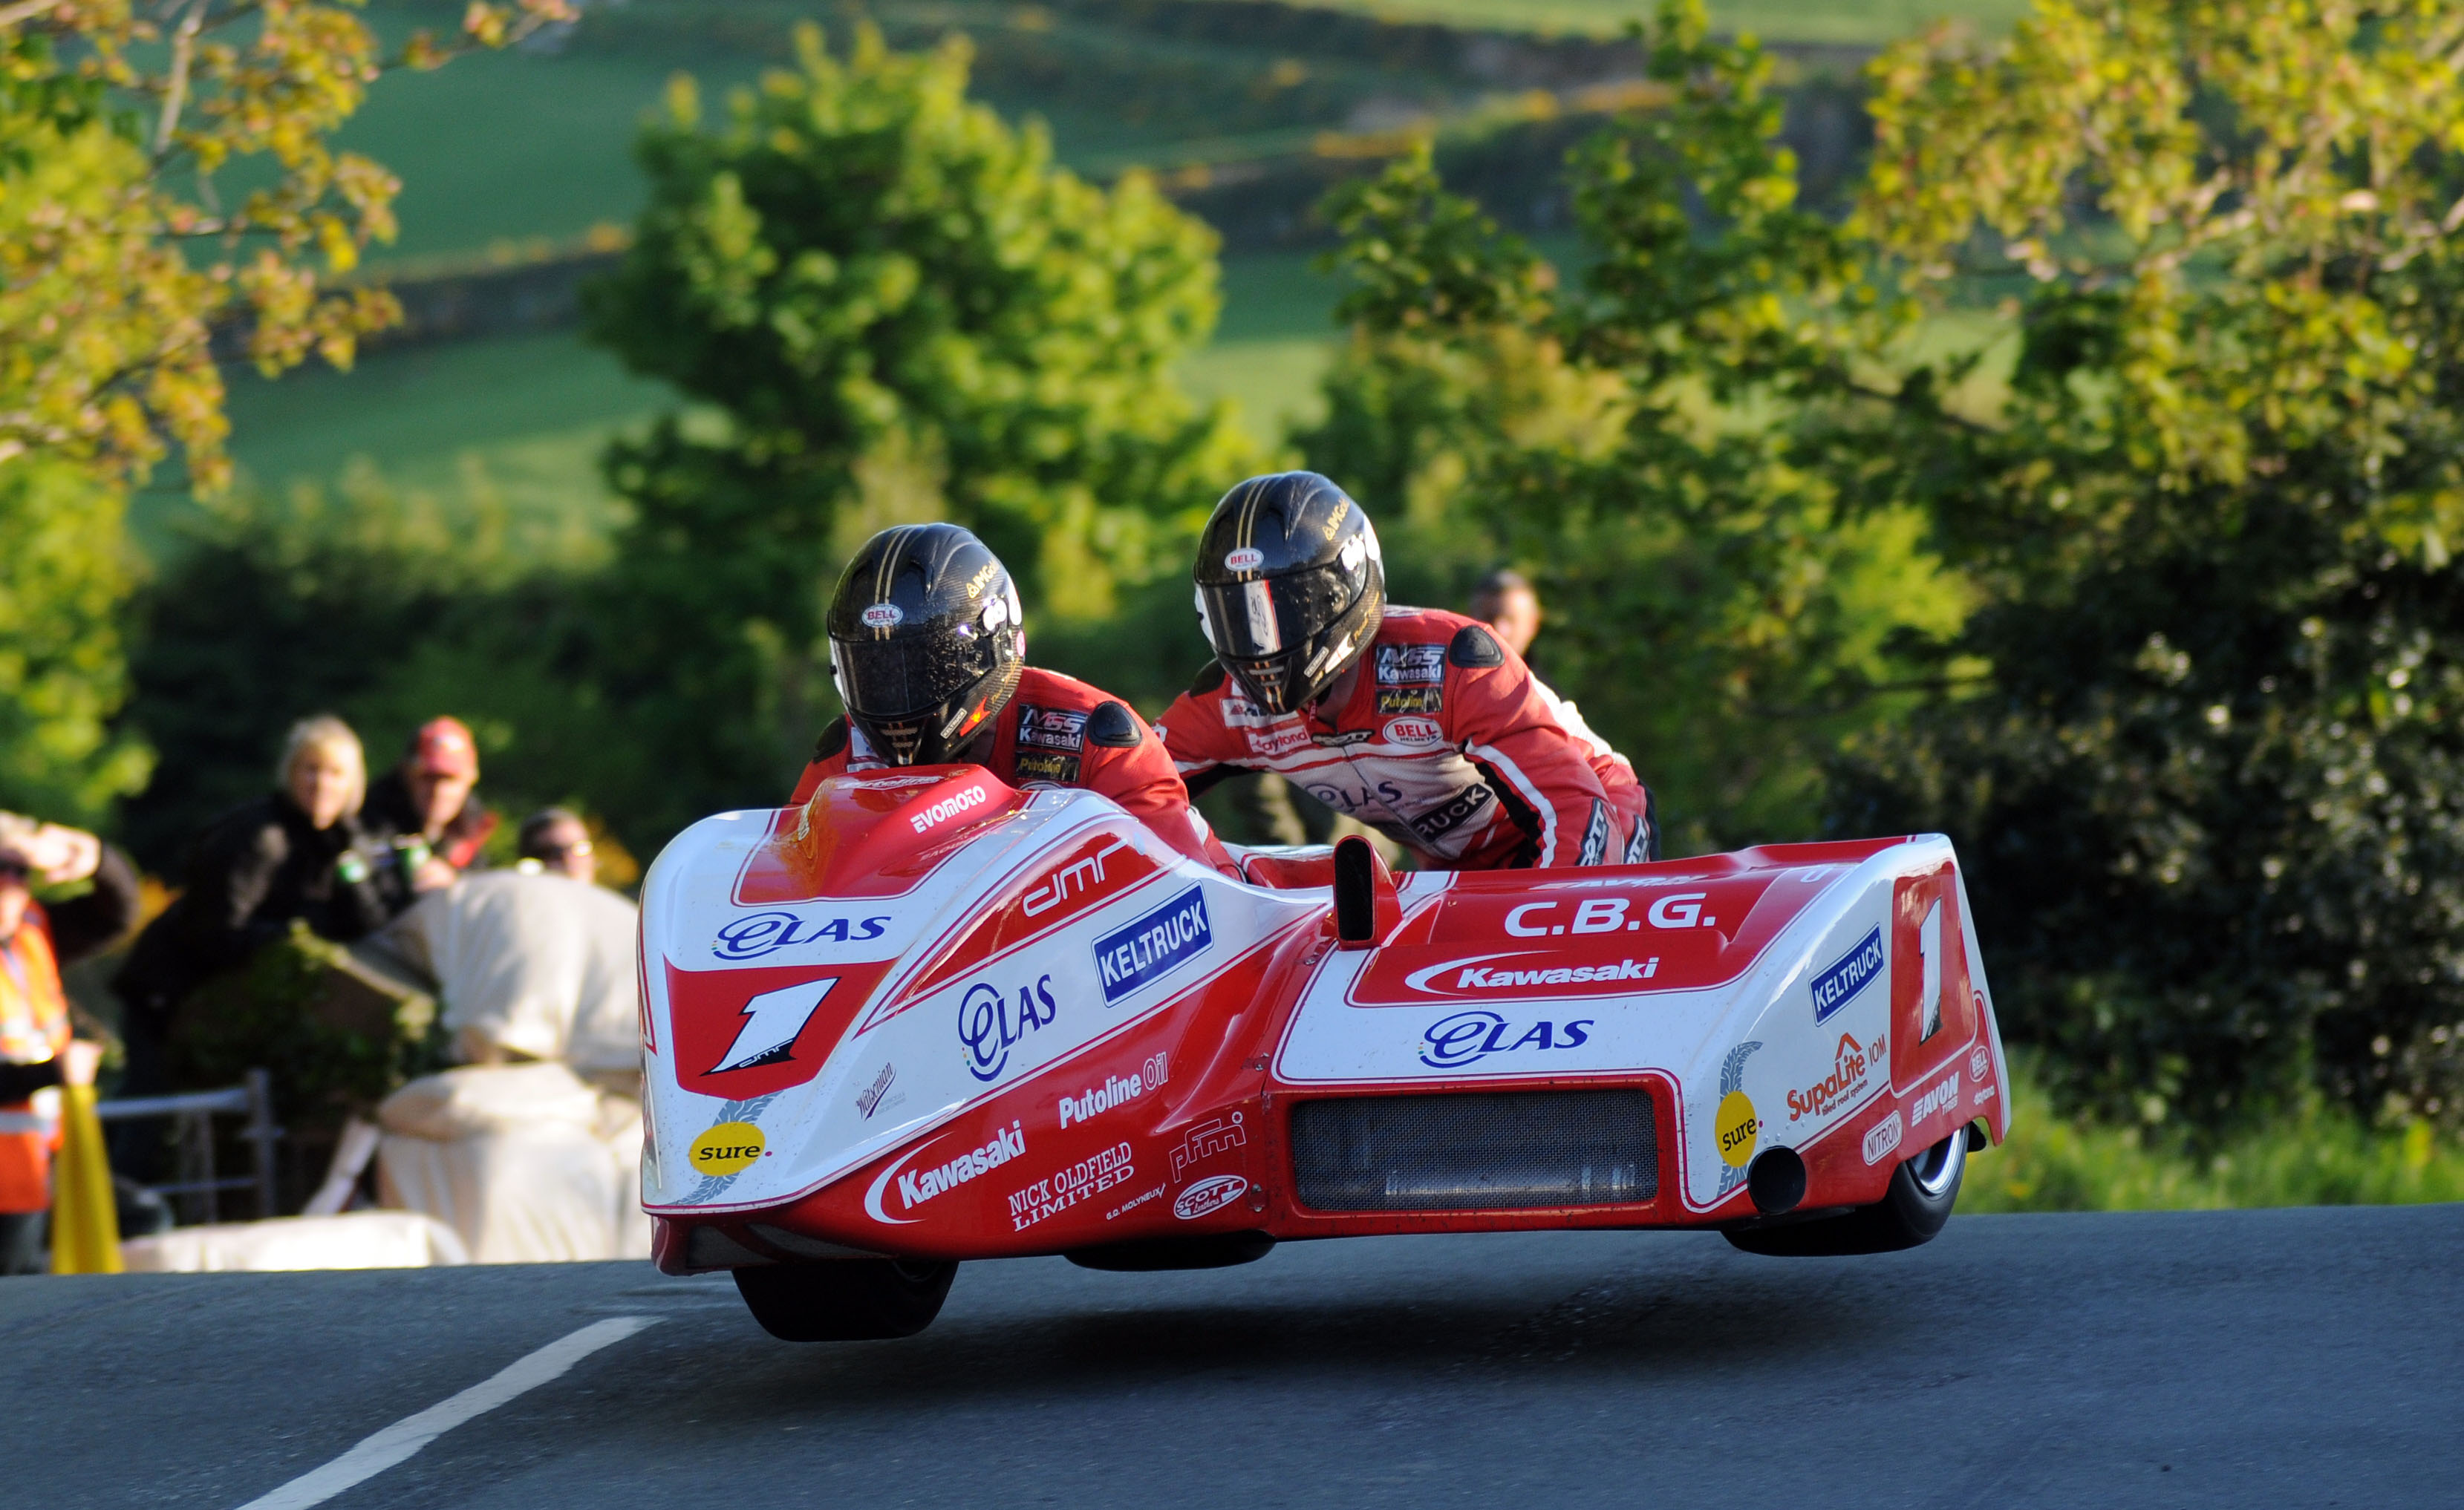 http://www.iomtt.com/Press/Photos/2013/News/May/25/~/media/Secure/Press/Images/Gallery/2013news/May/25/SPB_0219.ashx